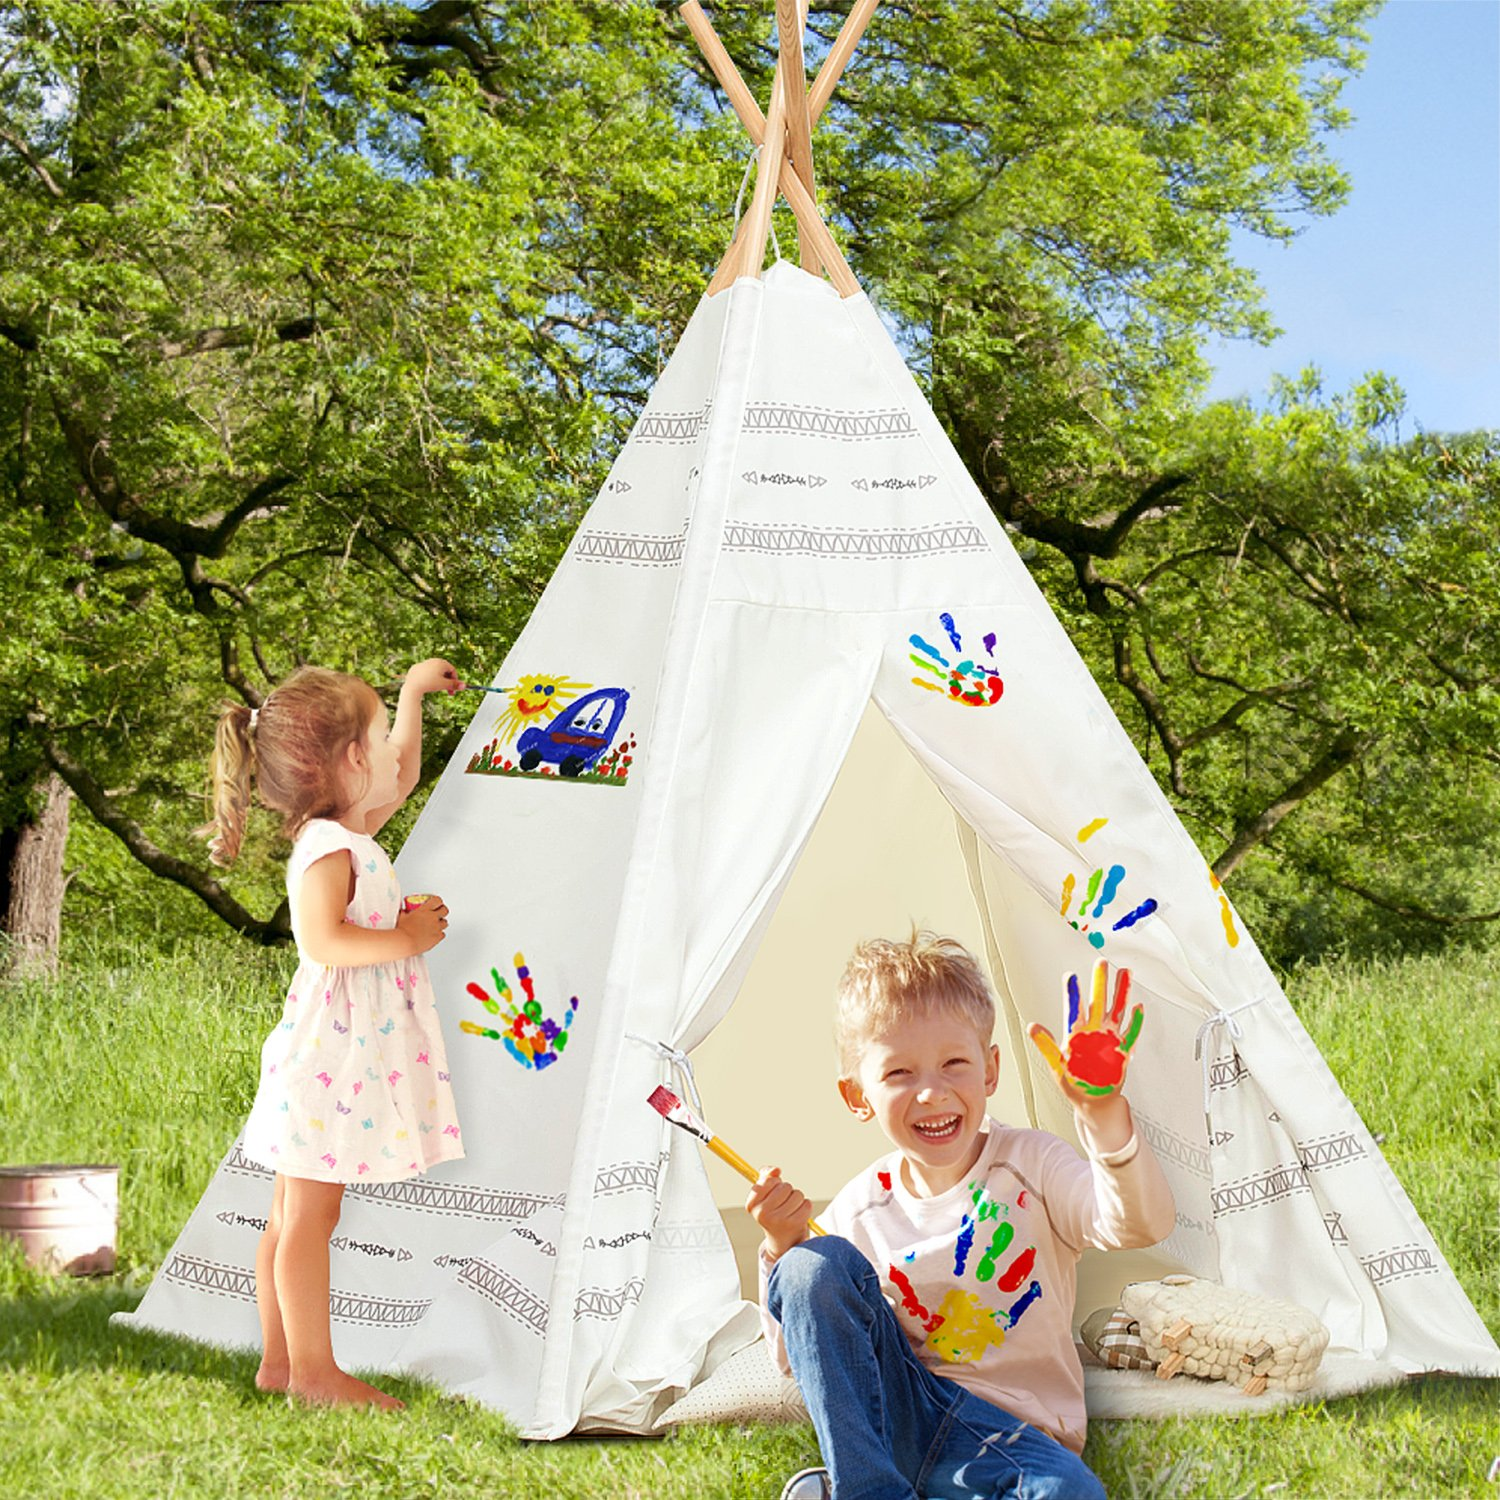 labebe tipi zelt kinderzimmer tipi spielzelt blau f r kinder im alter von 2 5 jahren spielzelt. Black Bedroom Furniture Sets. Home Design Ideas